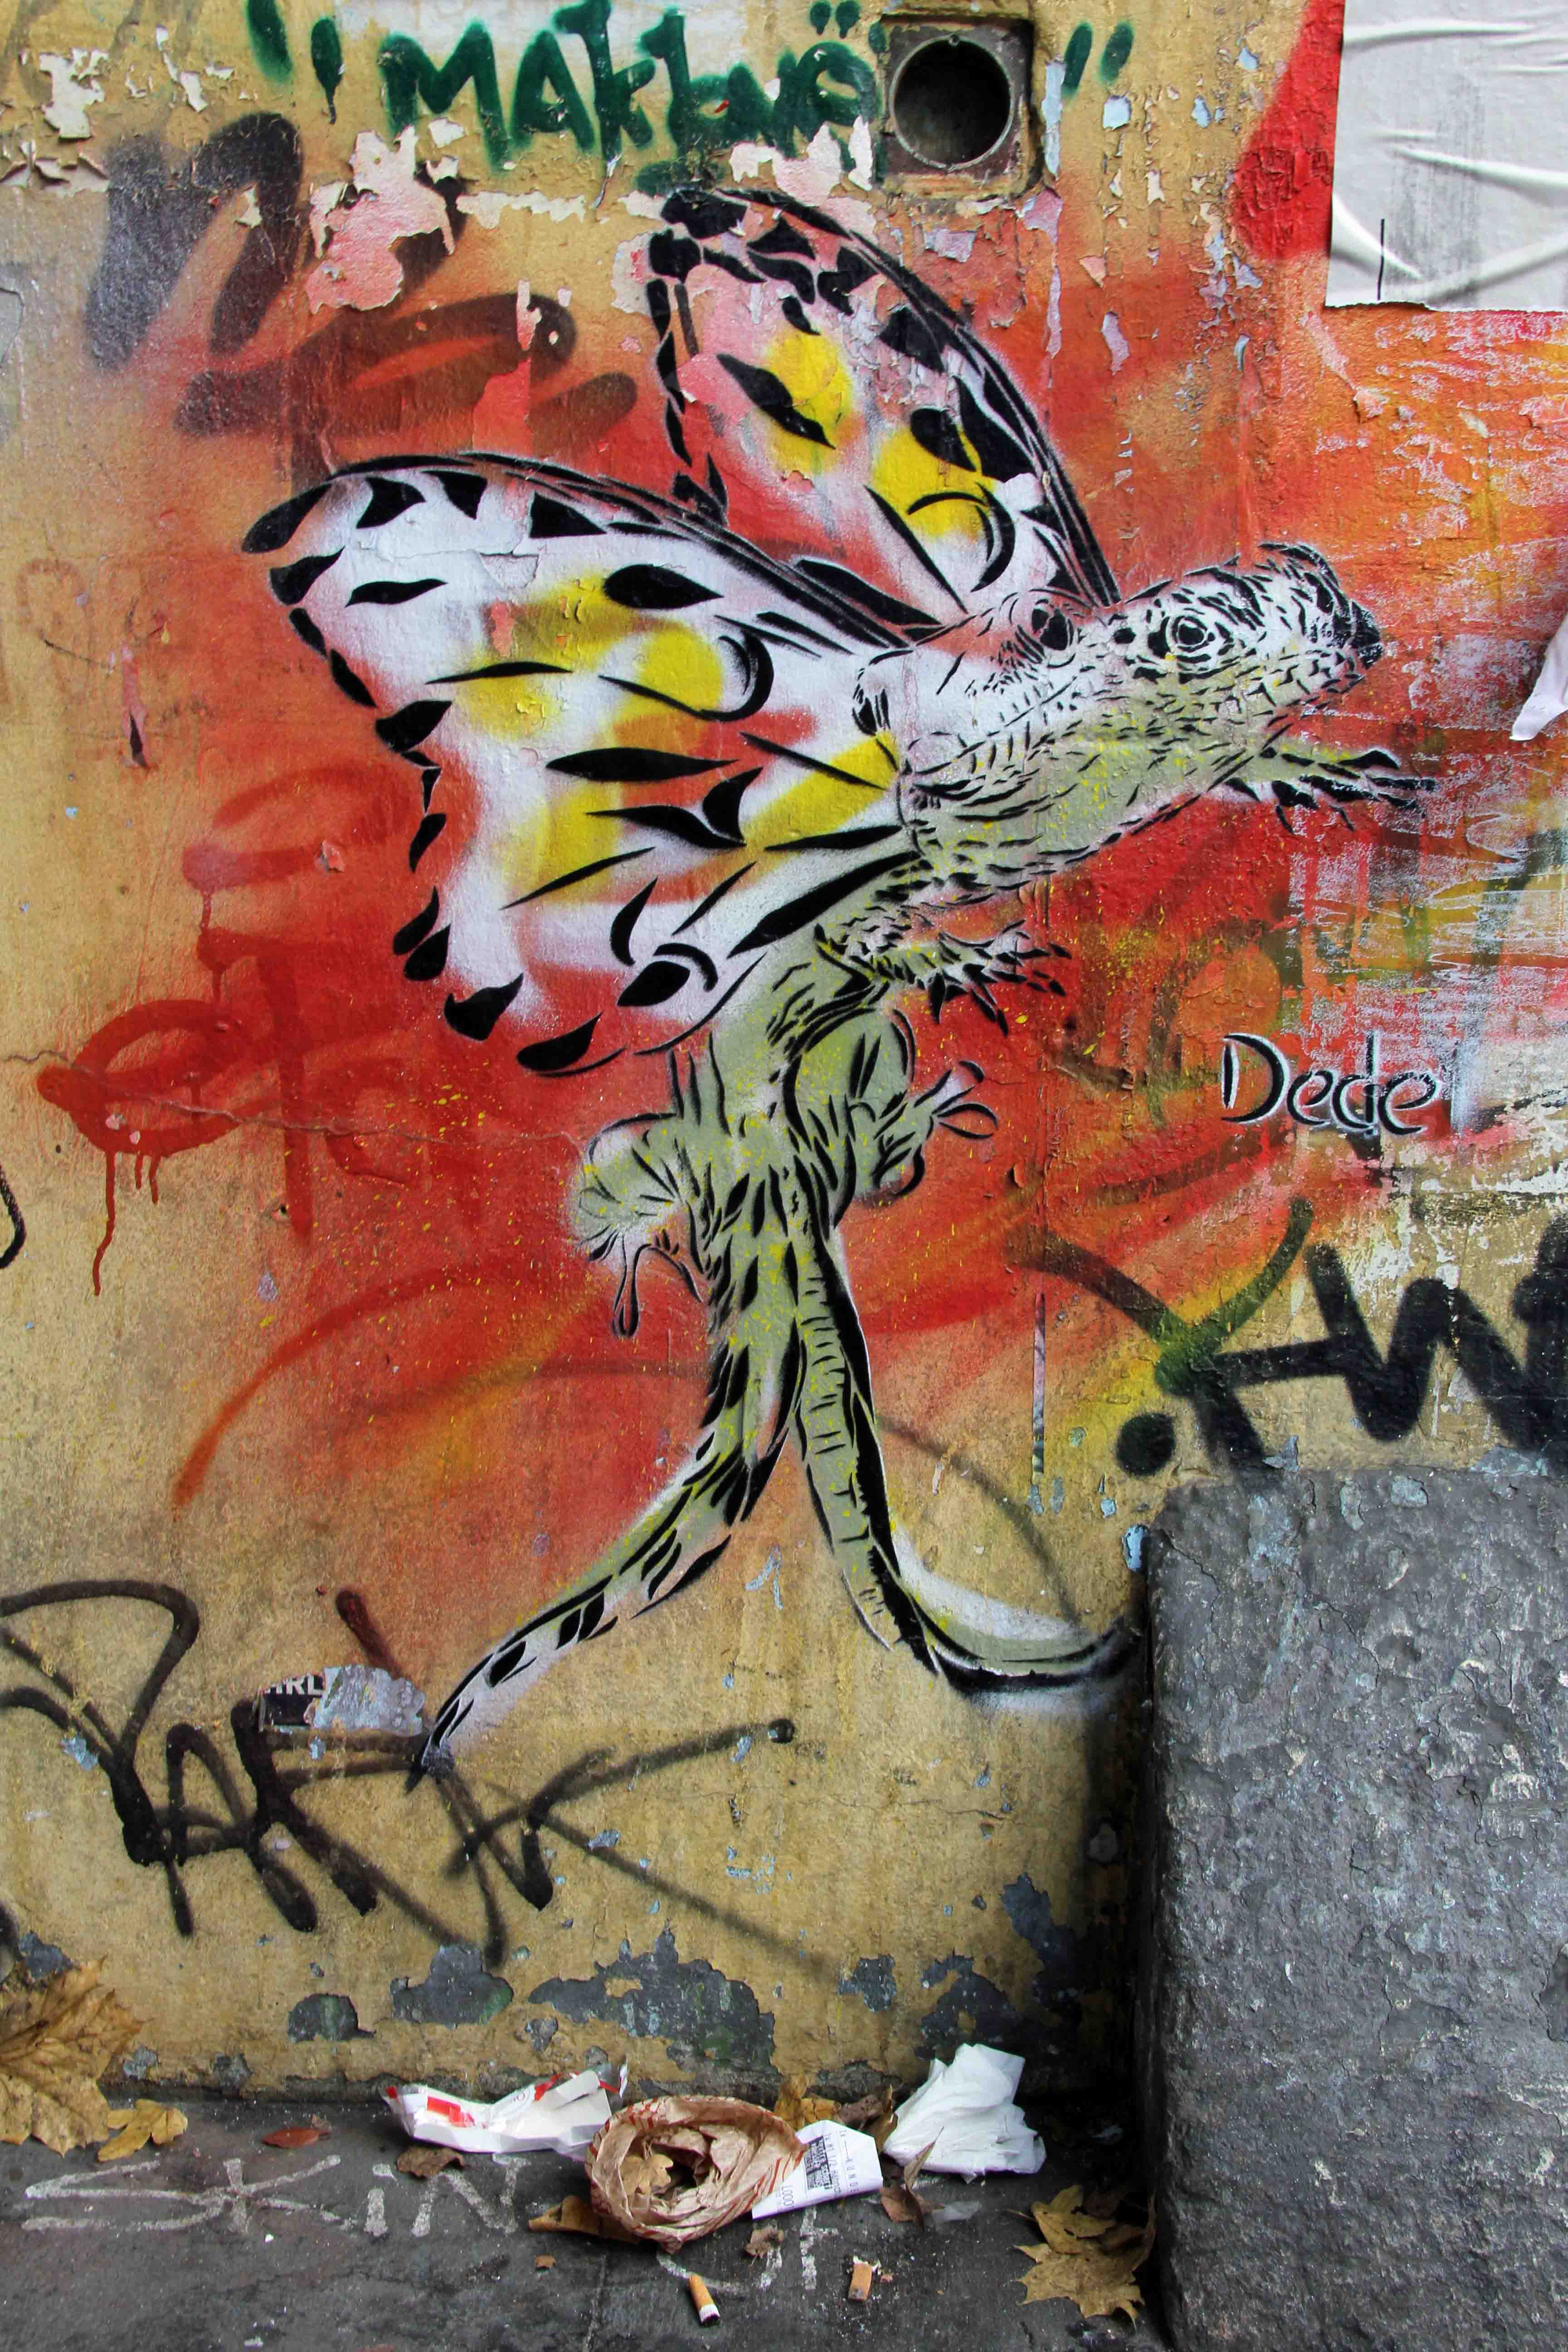 Lizard King (Wild Life) (Siamese Lizard With Butterfly Wings) - Street Art by Dede in Berlin